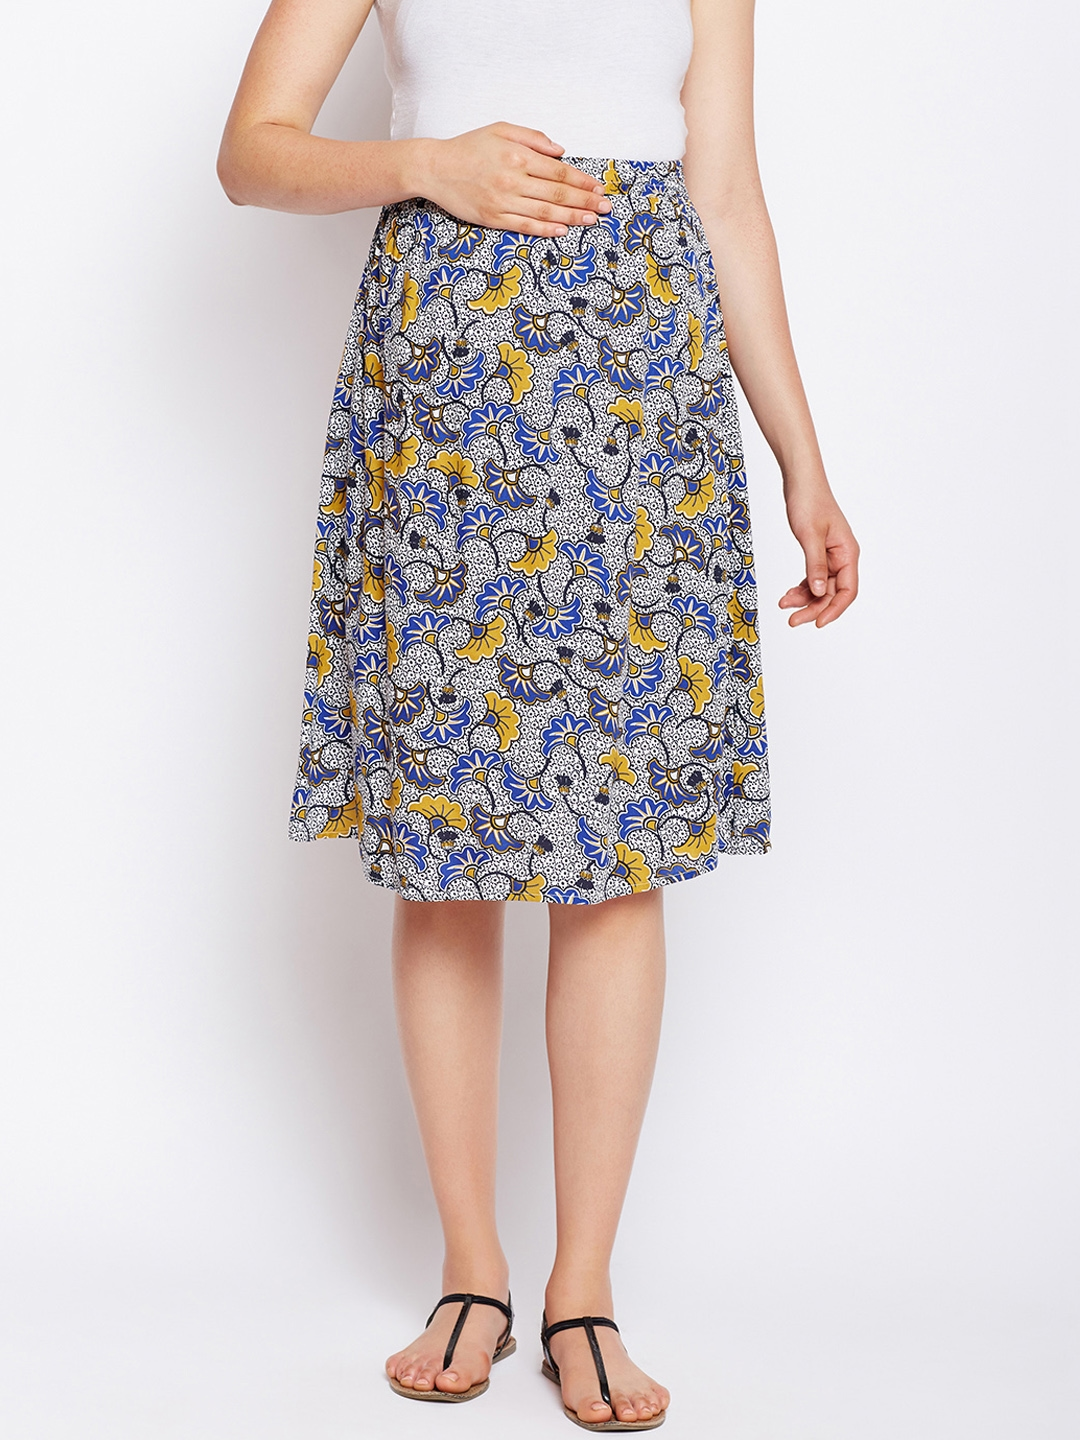 cc782e5995676 Buy Oxolloxo Blue & Yellow Floral Printed Maternity A Line Skirt ...